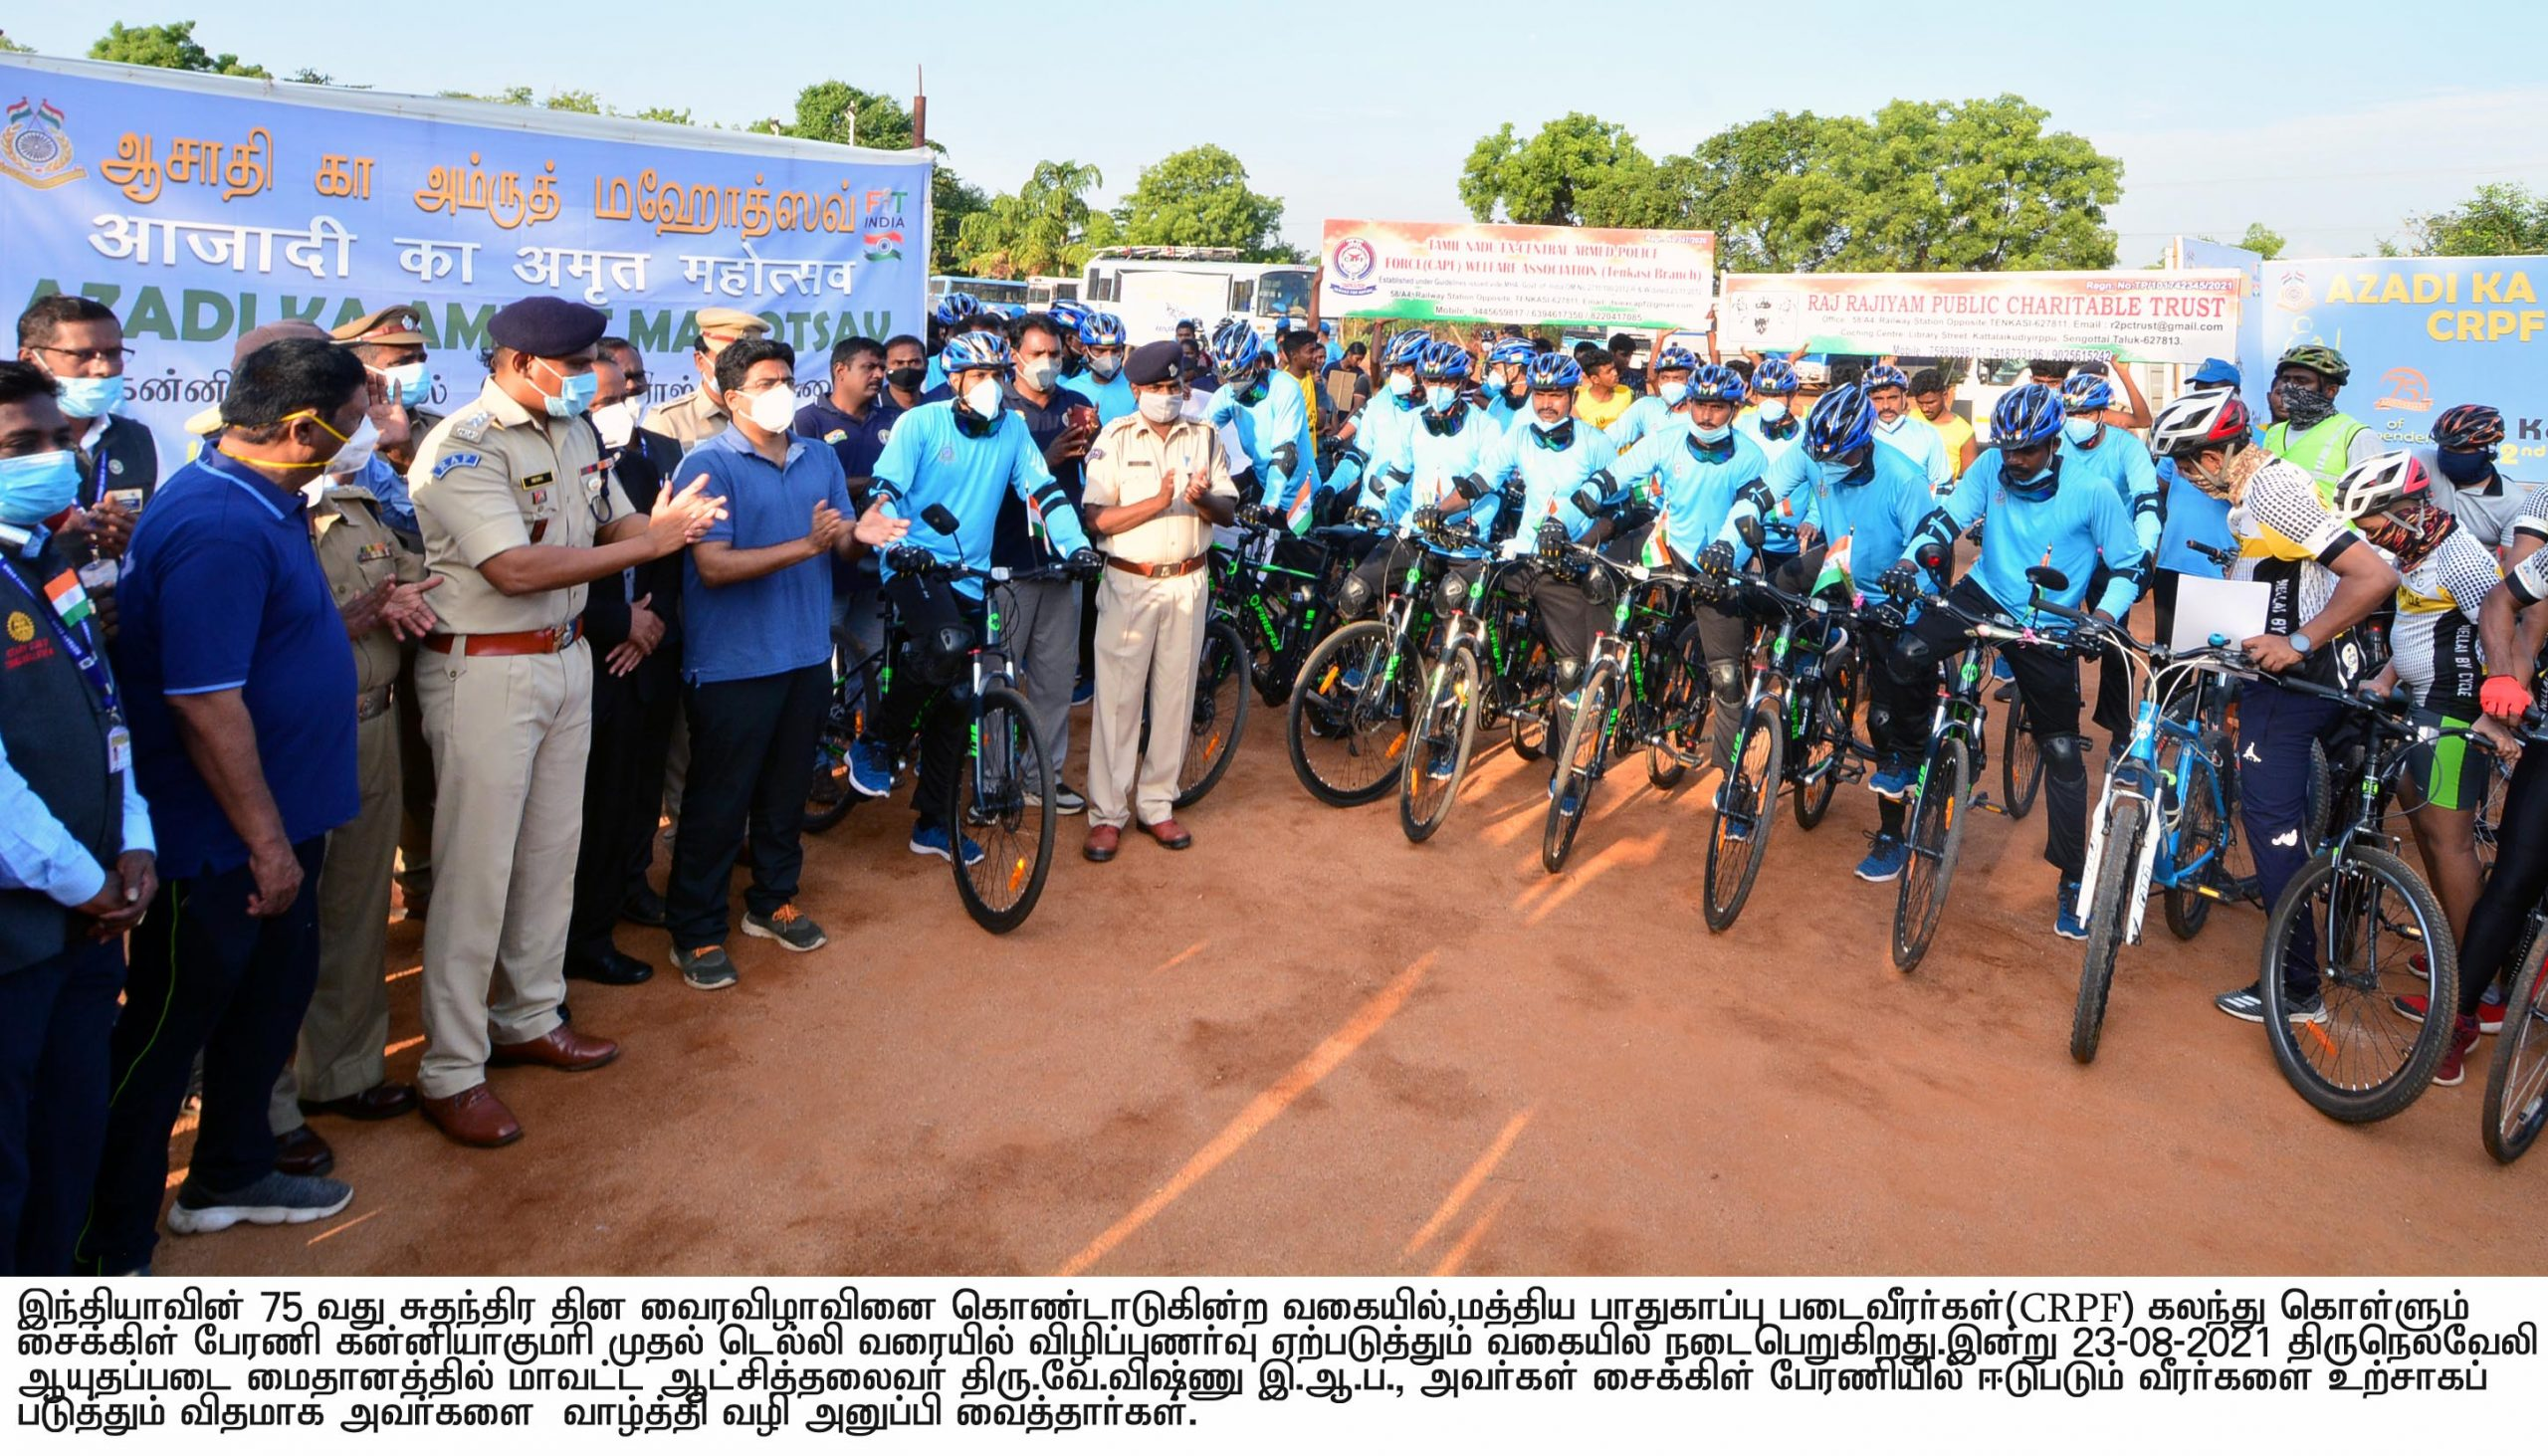 Bicycle rally from Kanniyakumari to Delhi to celebrate the 75th Independence Day Diamond Jubilee